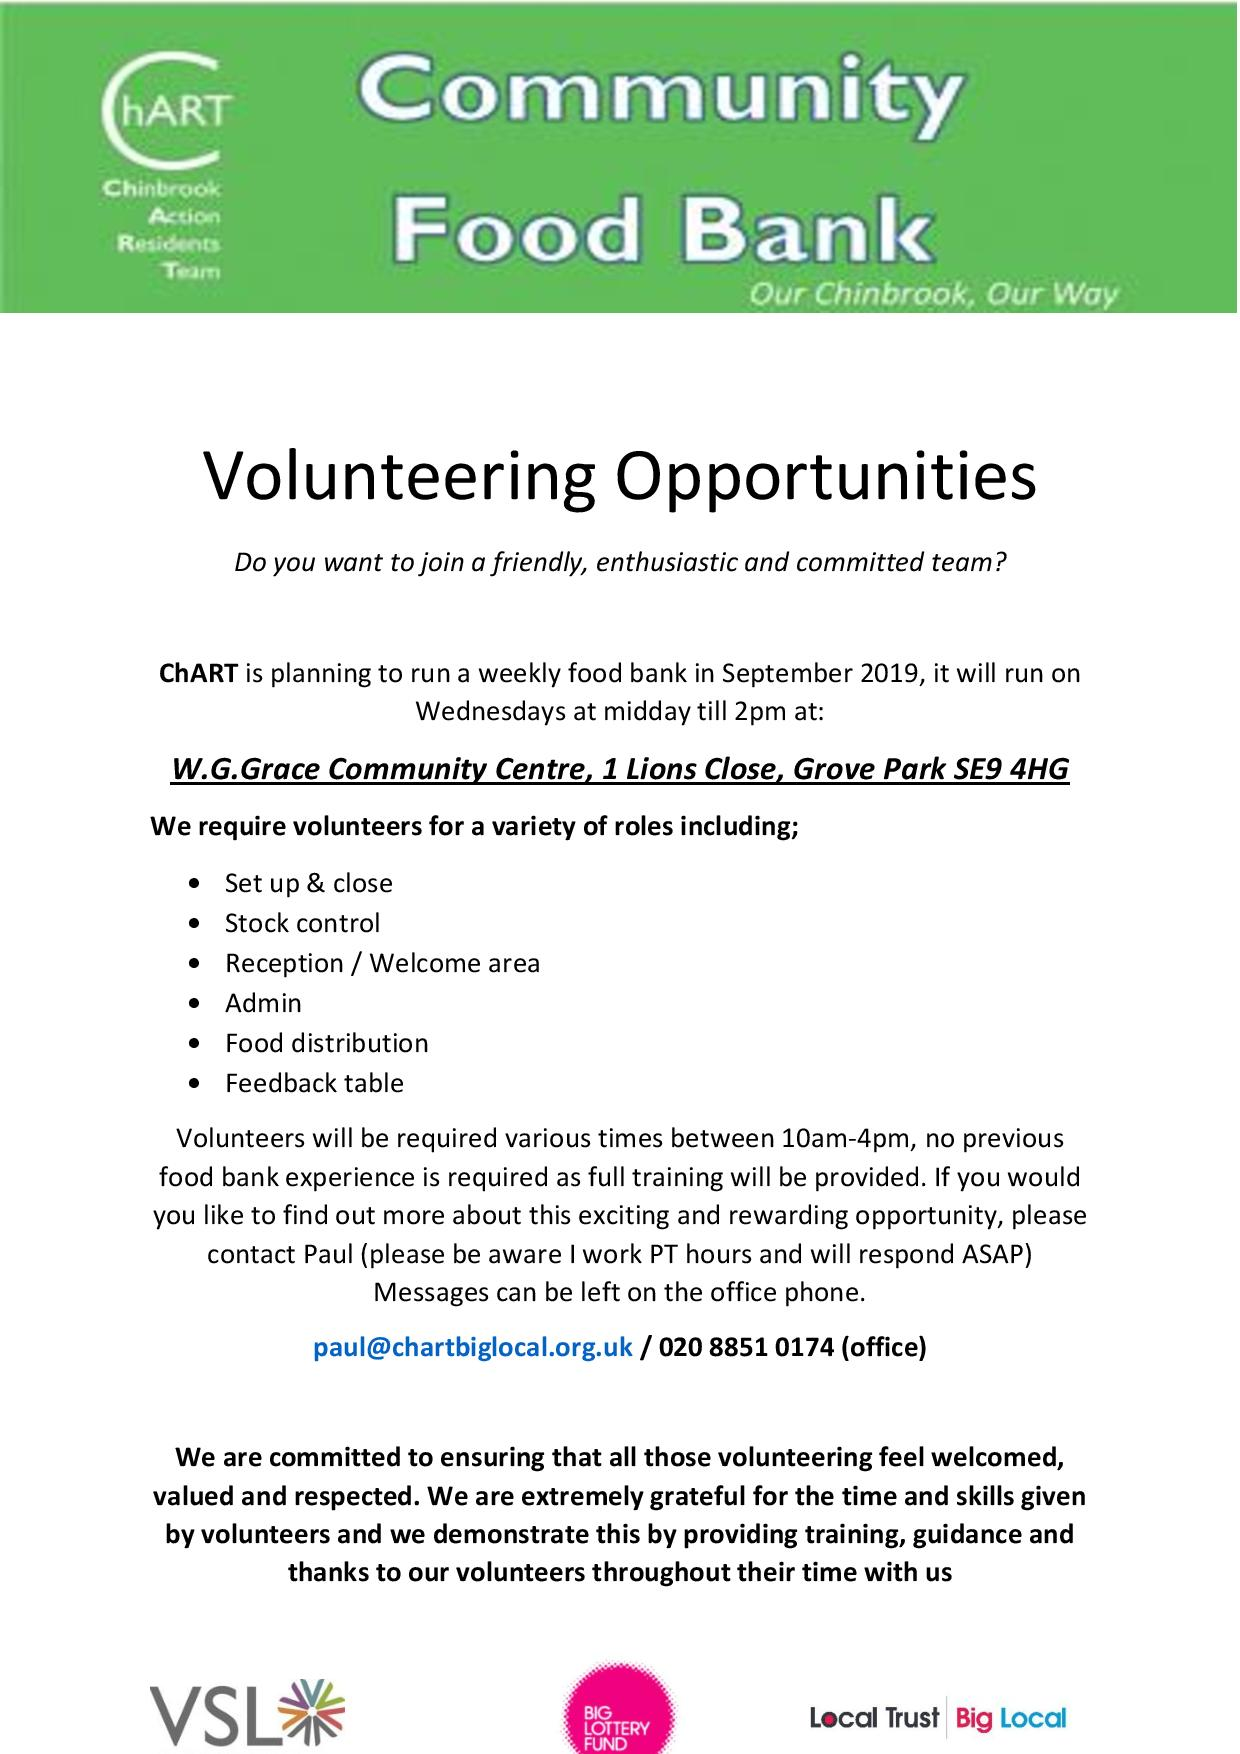 Food Bank Volunteering Opportunities flyer. Food Bank openeing September 2019, wednesdays midday till 2pm. Various volunteering roles listed. contact paul@chartbiglocal.org.uk / 020 8851 0174  for more information